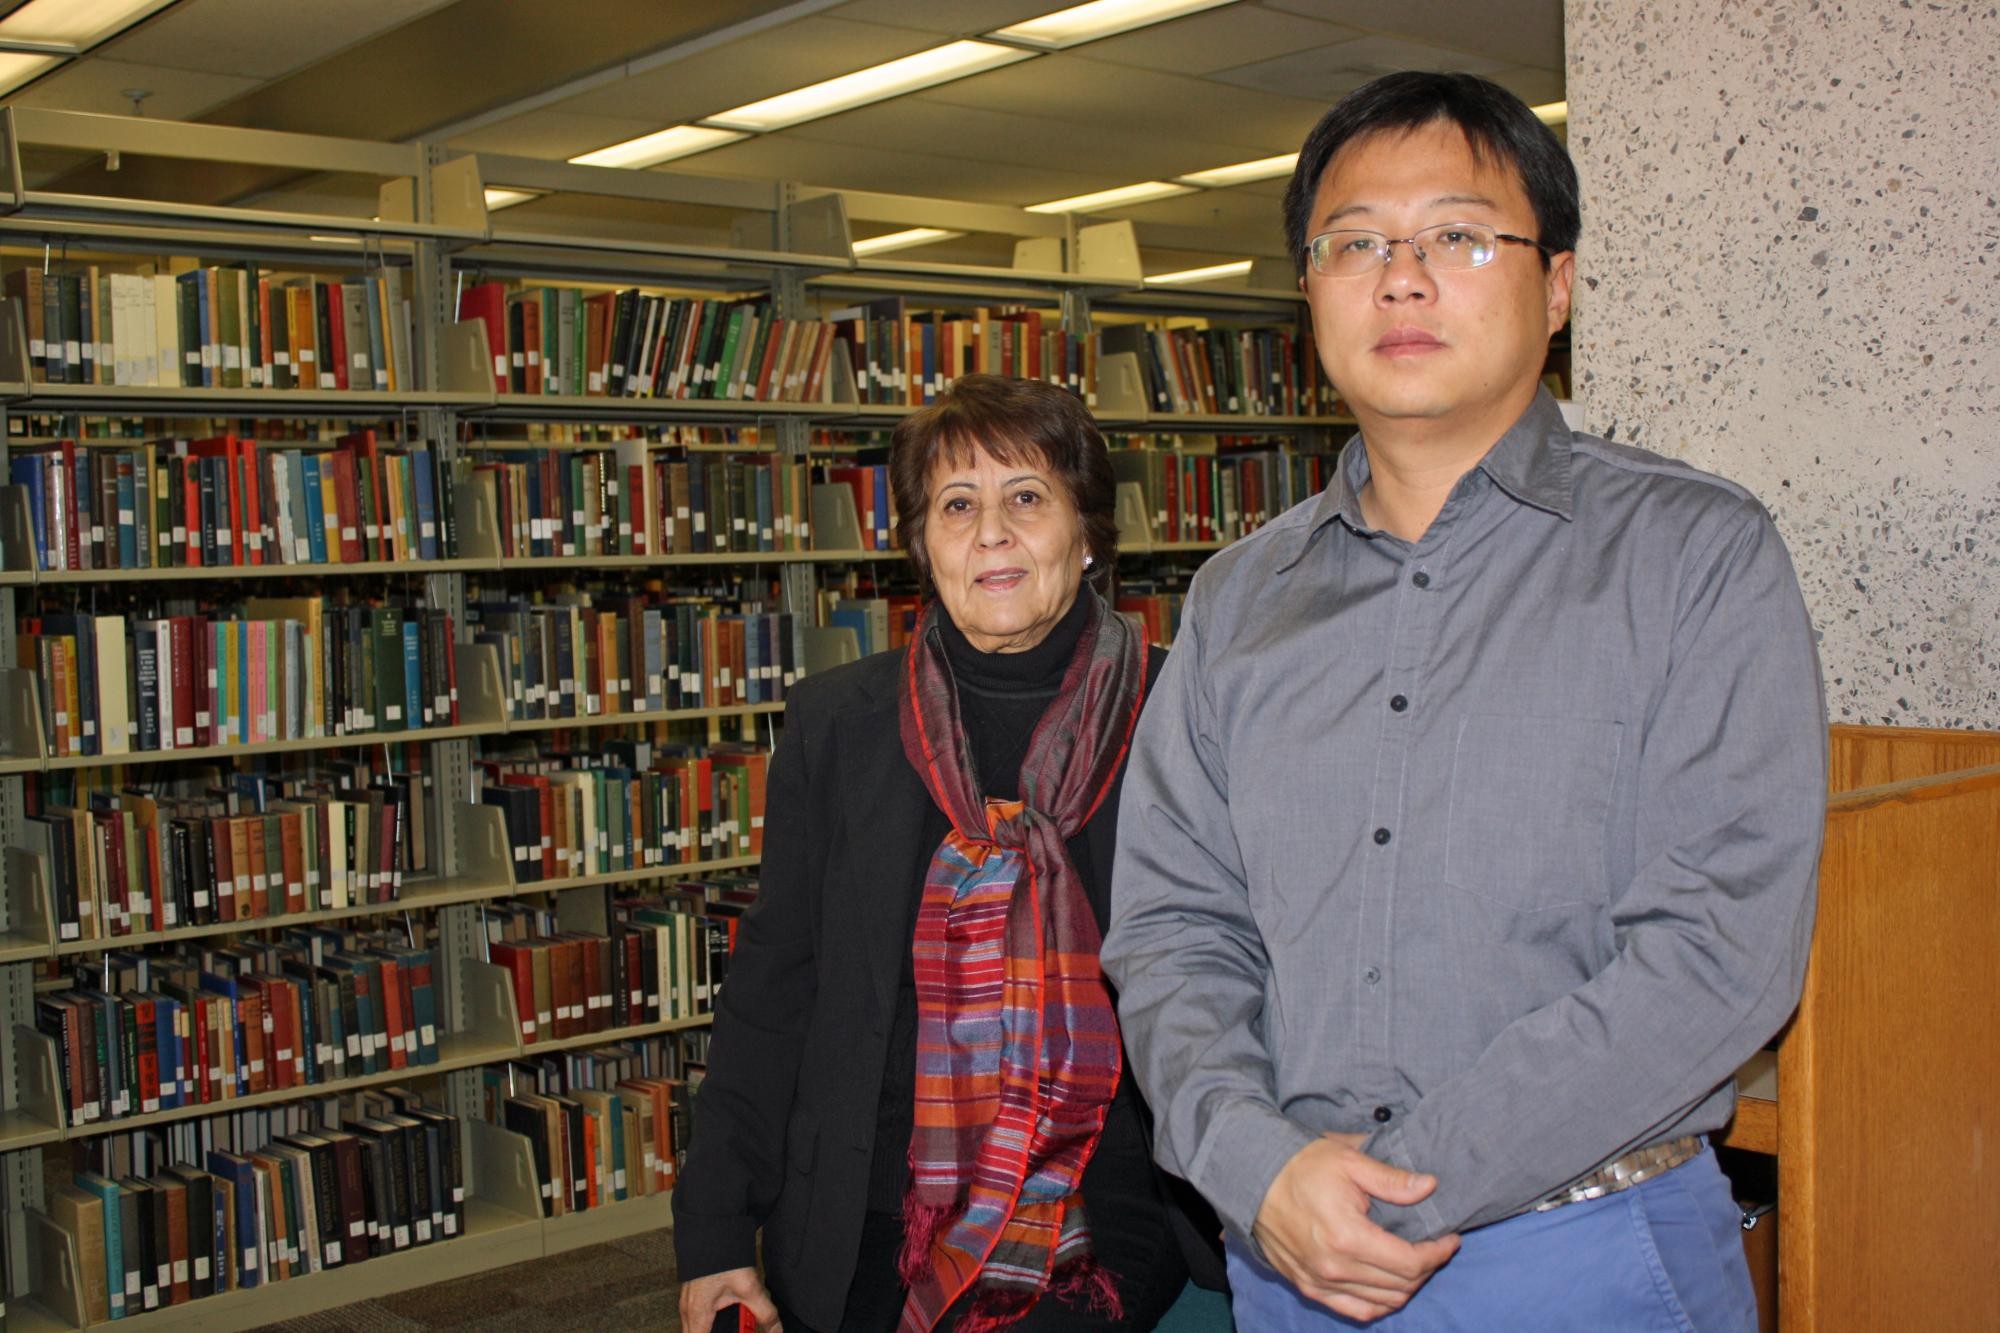 UA librarians Atifa R. Rawan and Yan Han have worked closely on the preservation project, at times traveling to Afghanistan to work directly with their collaborators.